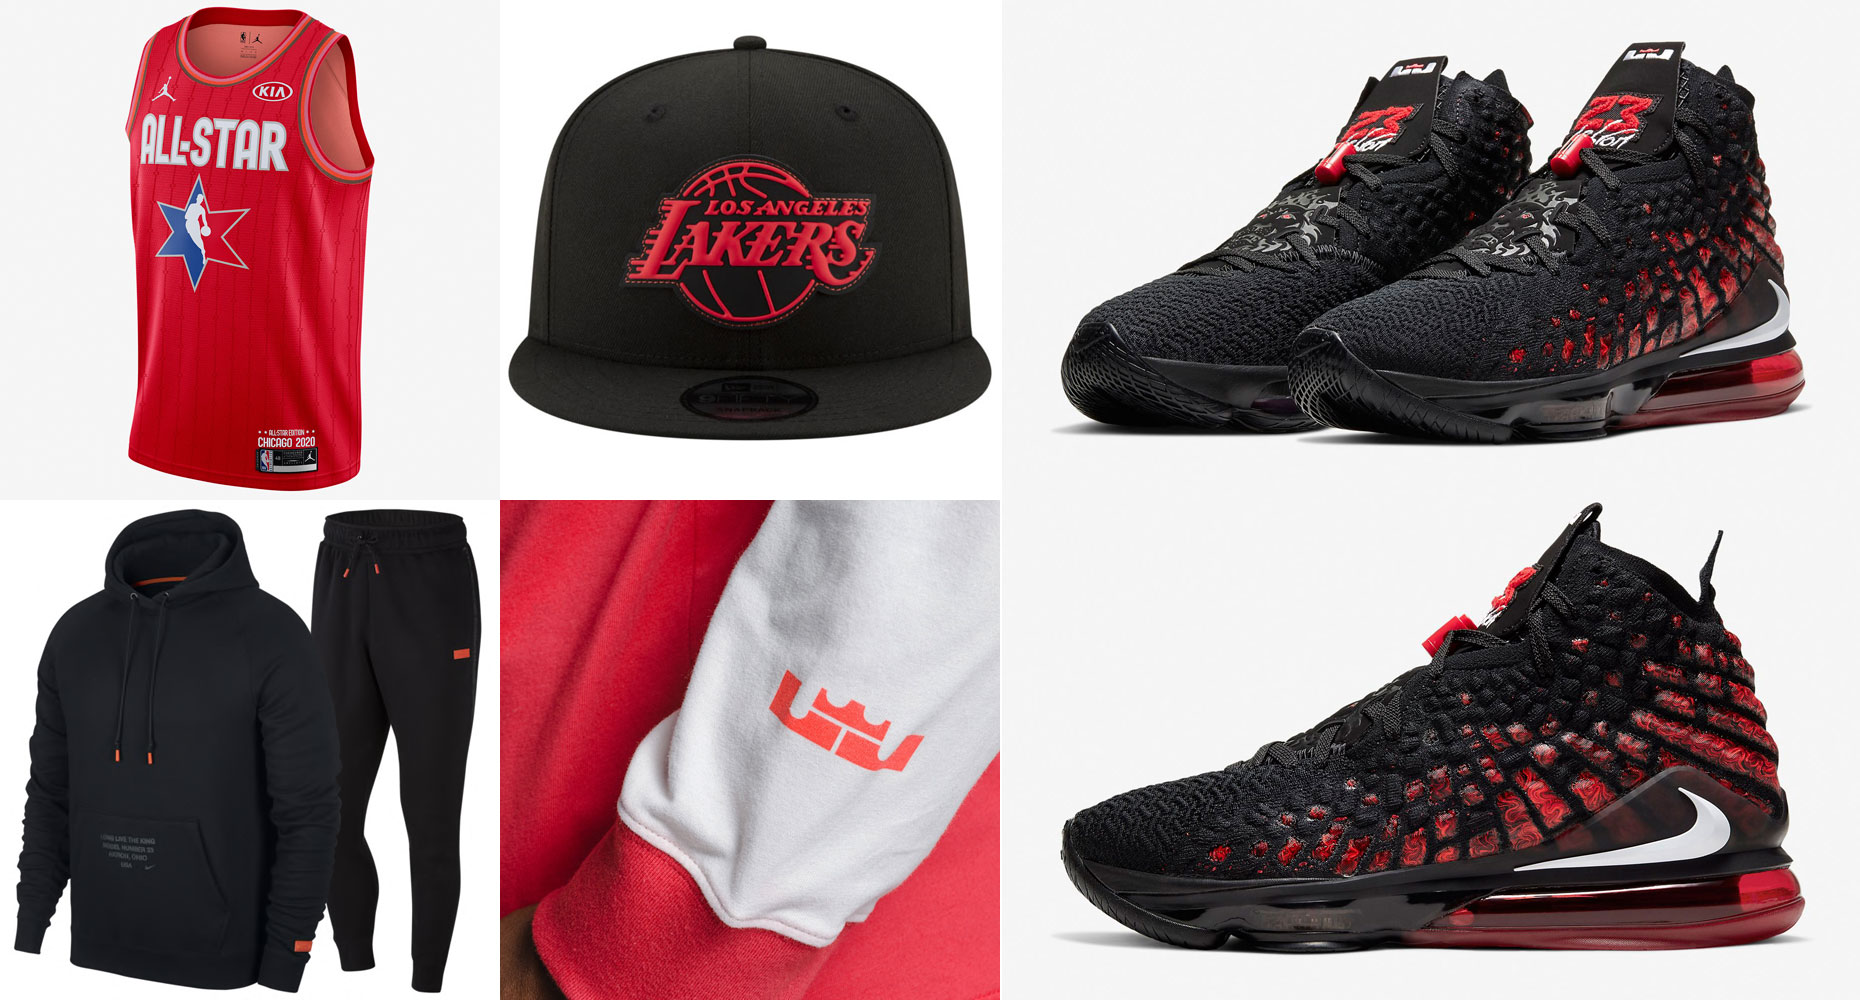 nike-lebron-17-infrared-clothing-match